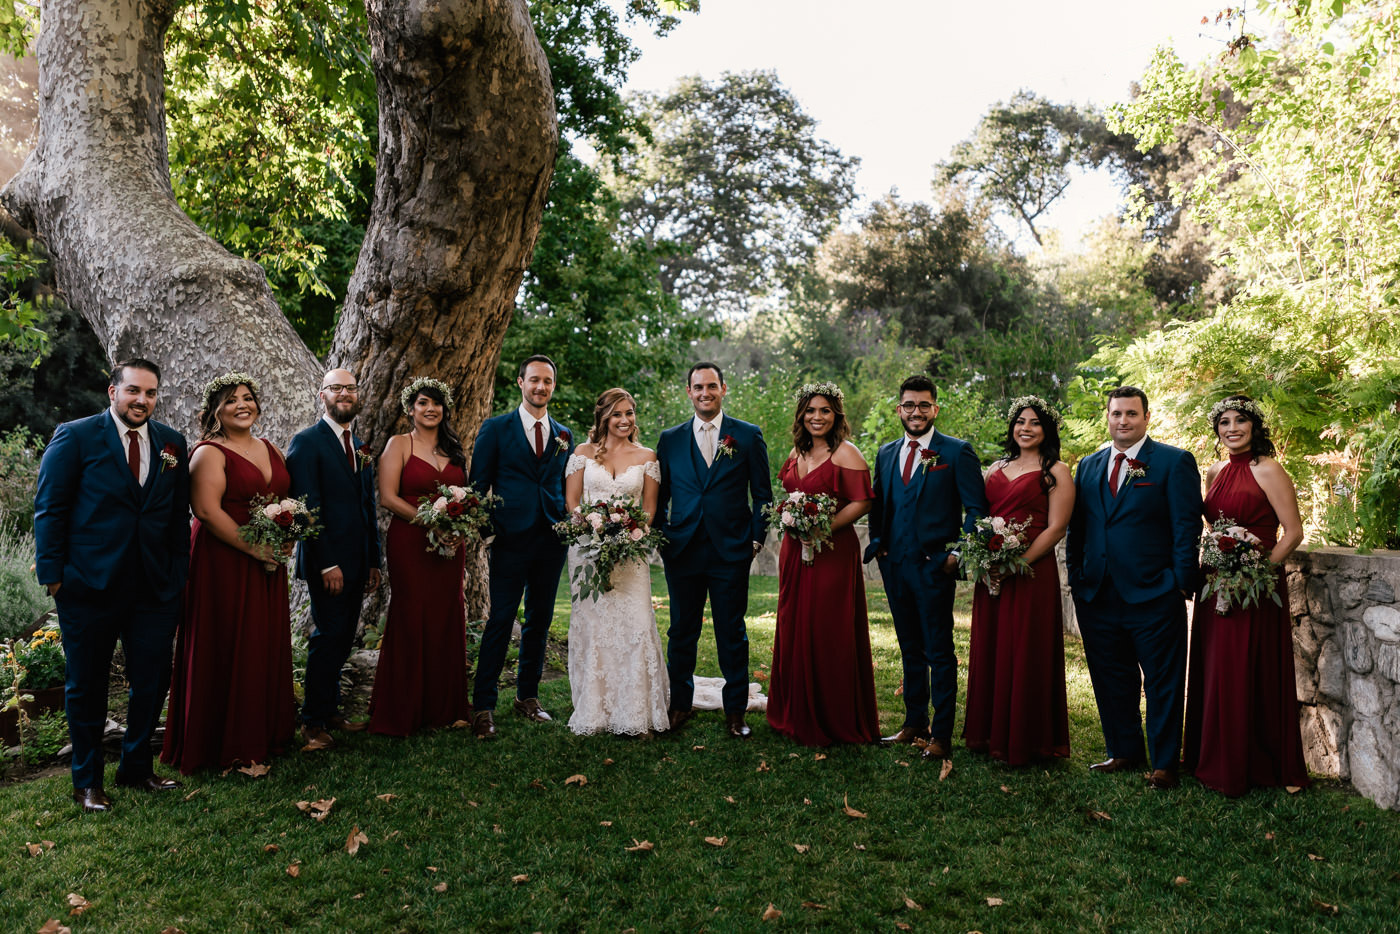 This good looking wedding party poses for a classic photo at The Homestead.